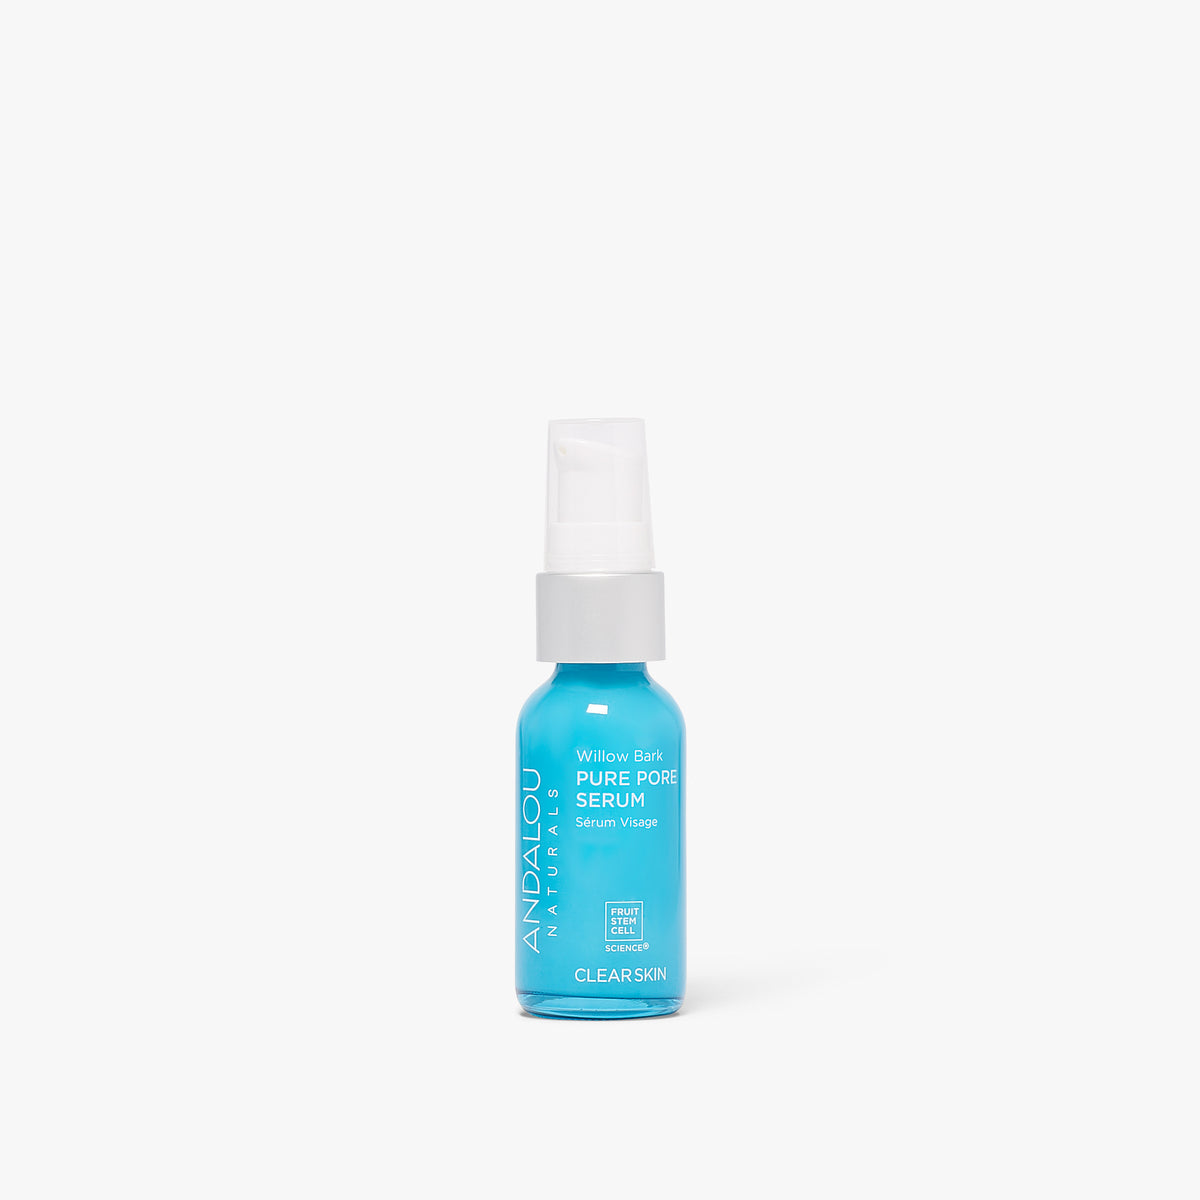 Clear Skin Willow Bark Pure Pore Serum